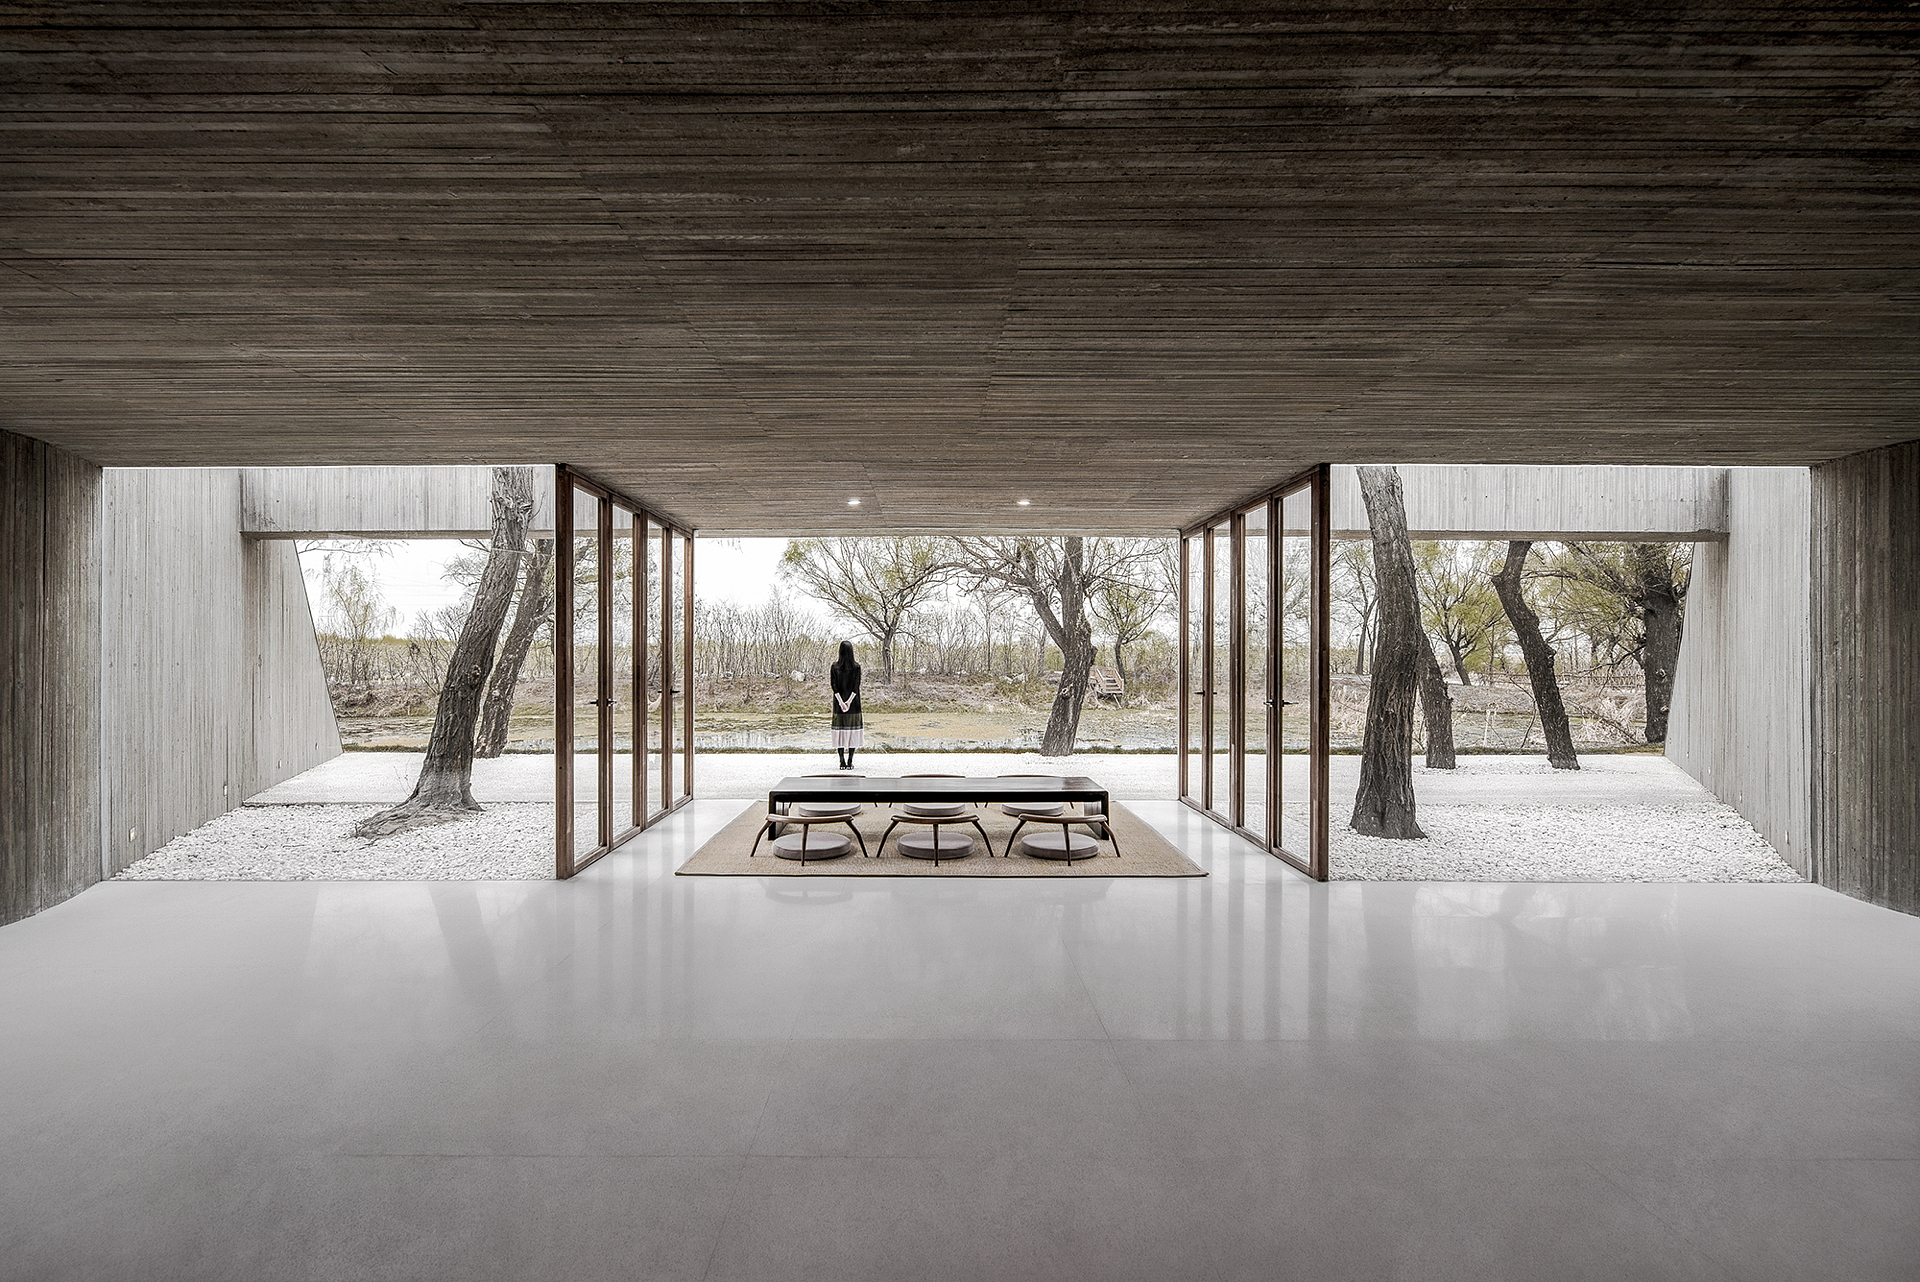 Archstudio: Buddhist temple on the river in Tangshan, China